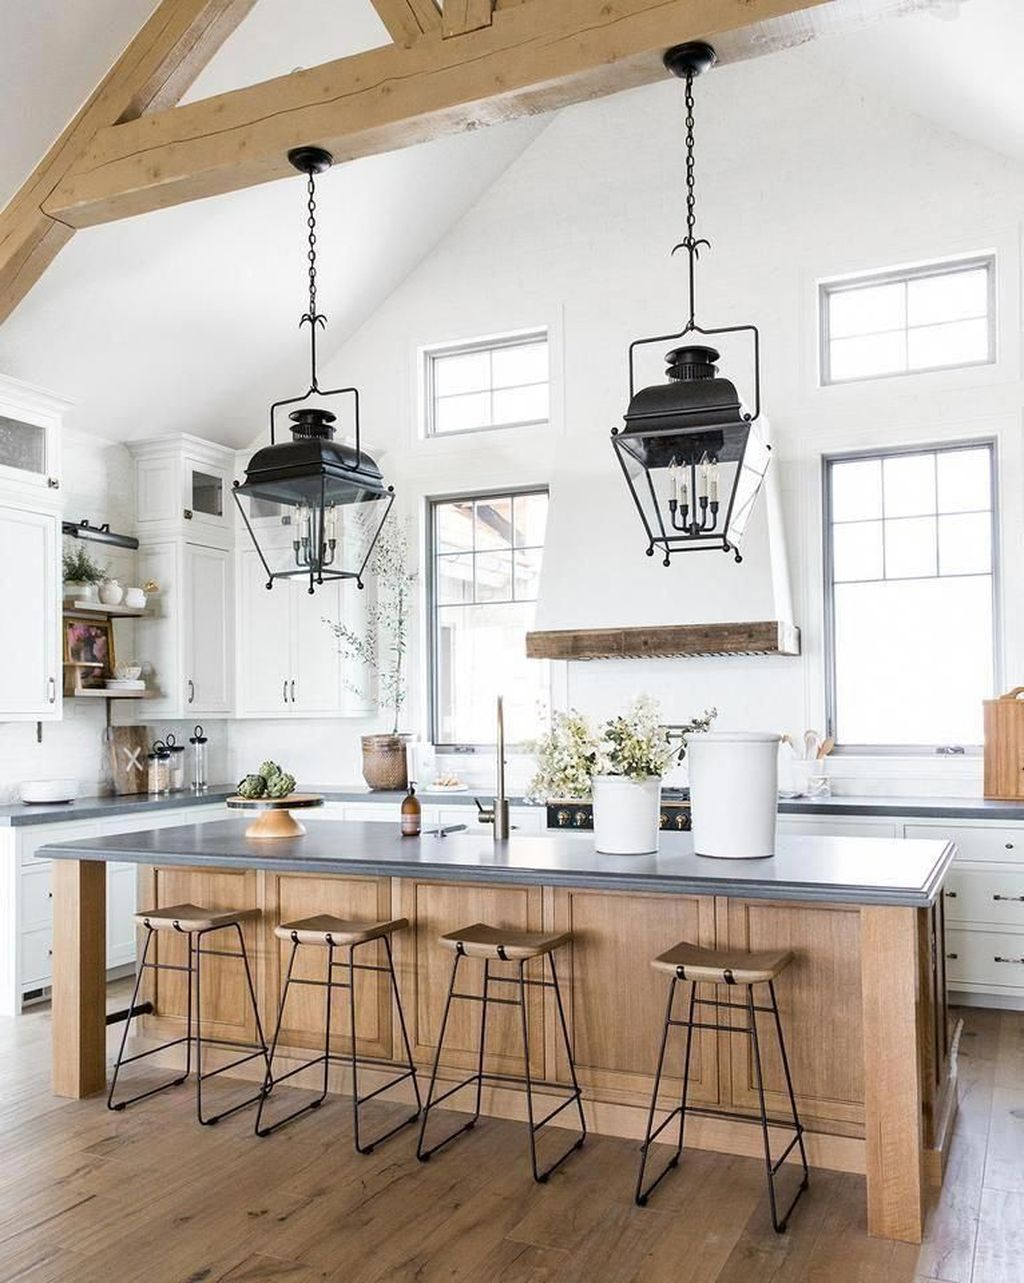 Awesome Rustic Kitchen Design Ideas 32